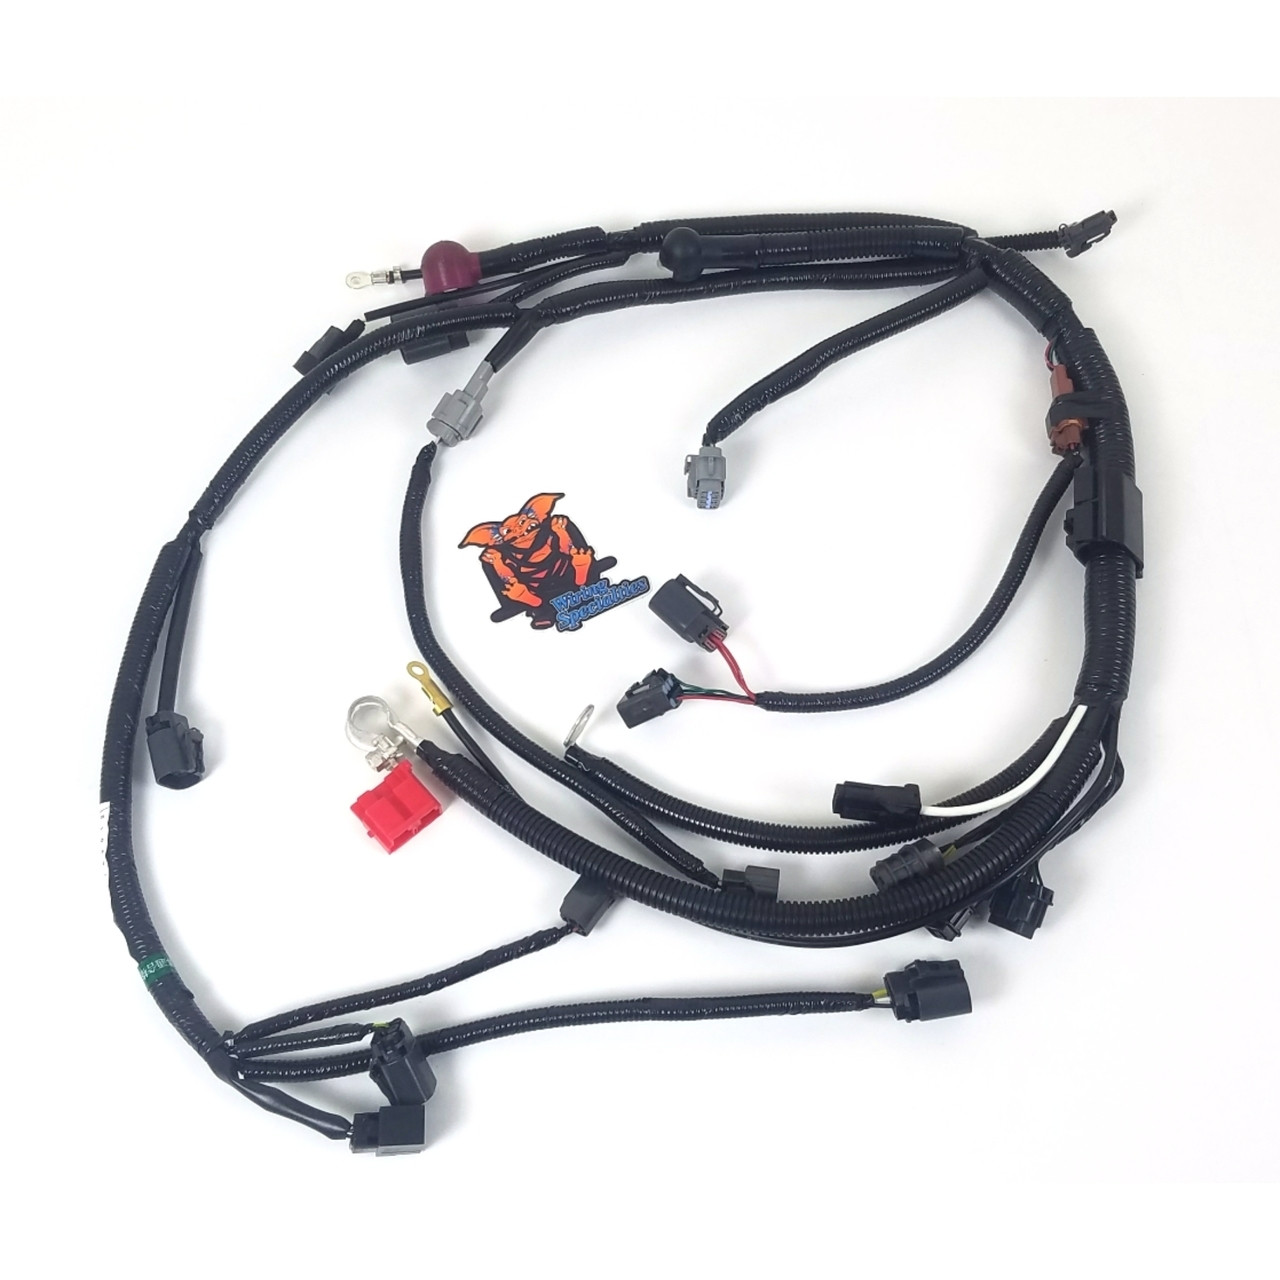 Wiring Specialties S14 KA24DE Lower Harness for 240SX S14